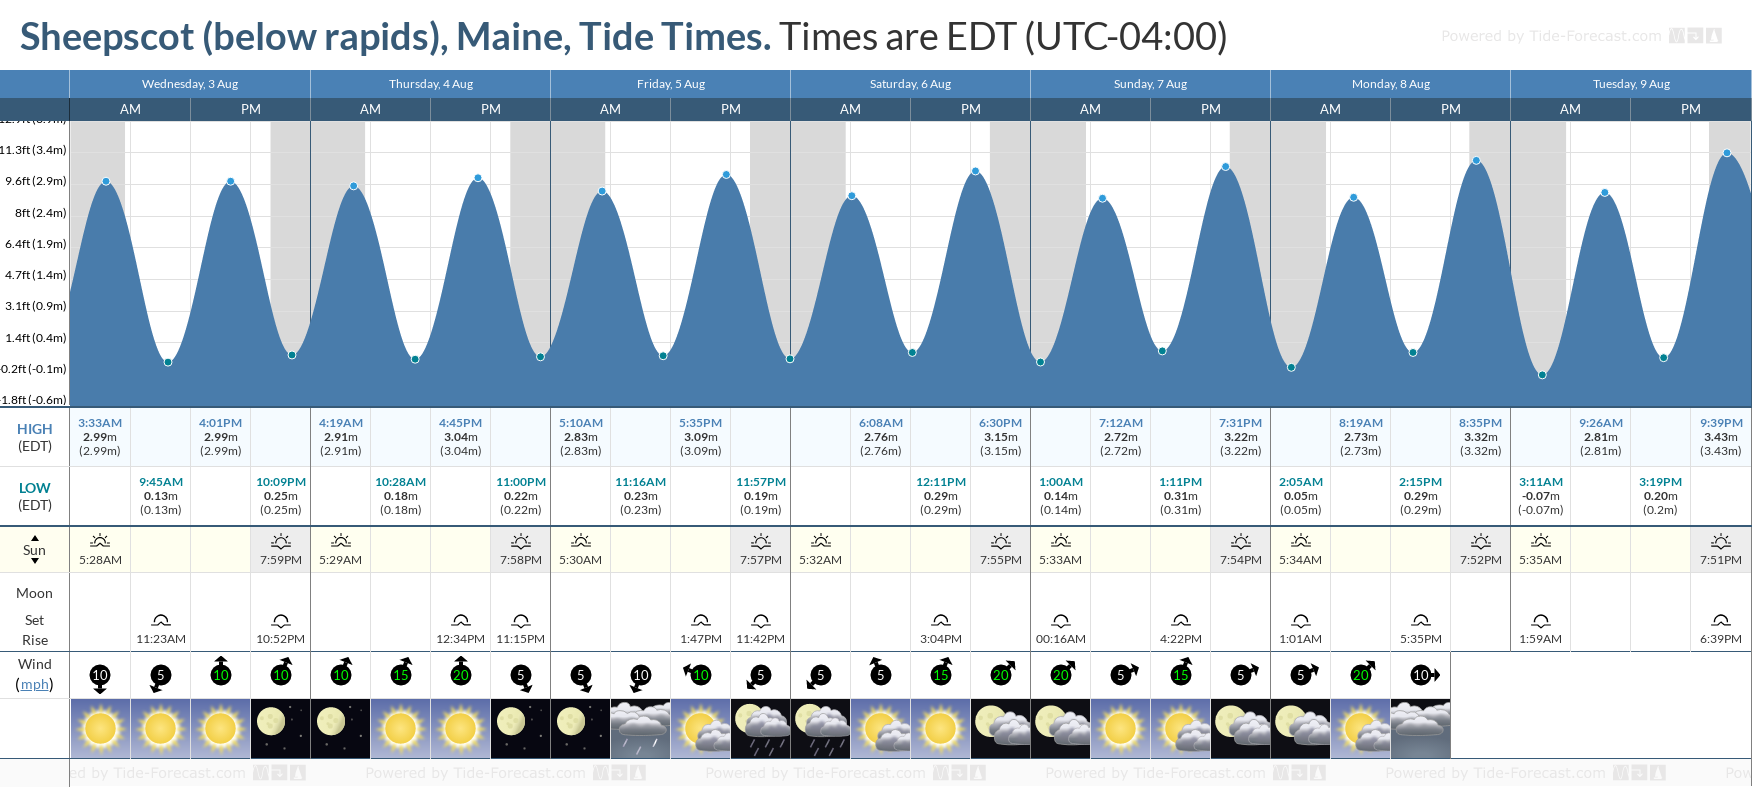 Sheepscot (below rapids), Maine Tide Chart including high and low tide tide times for the next 7 days